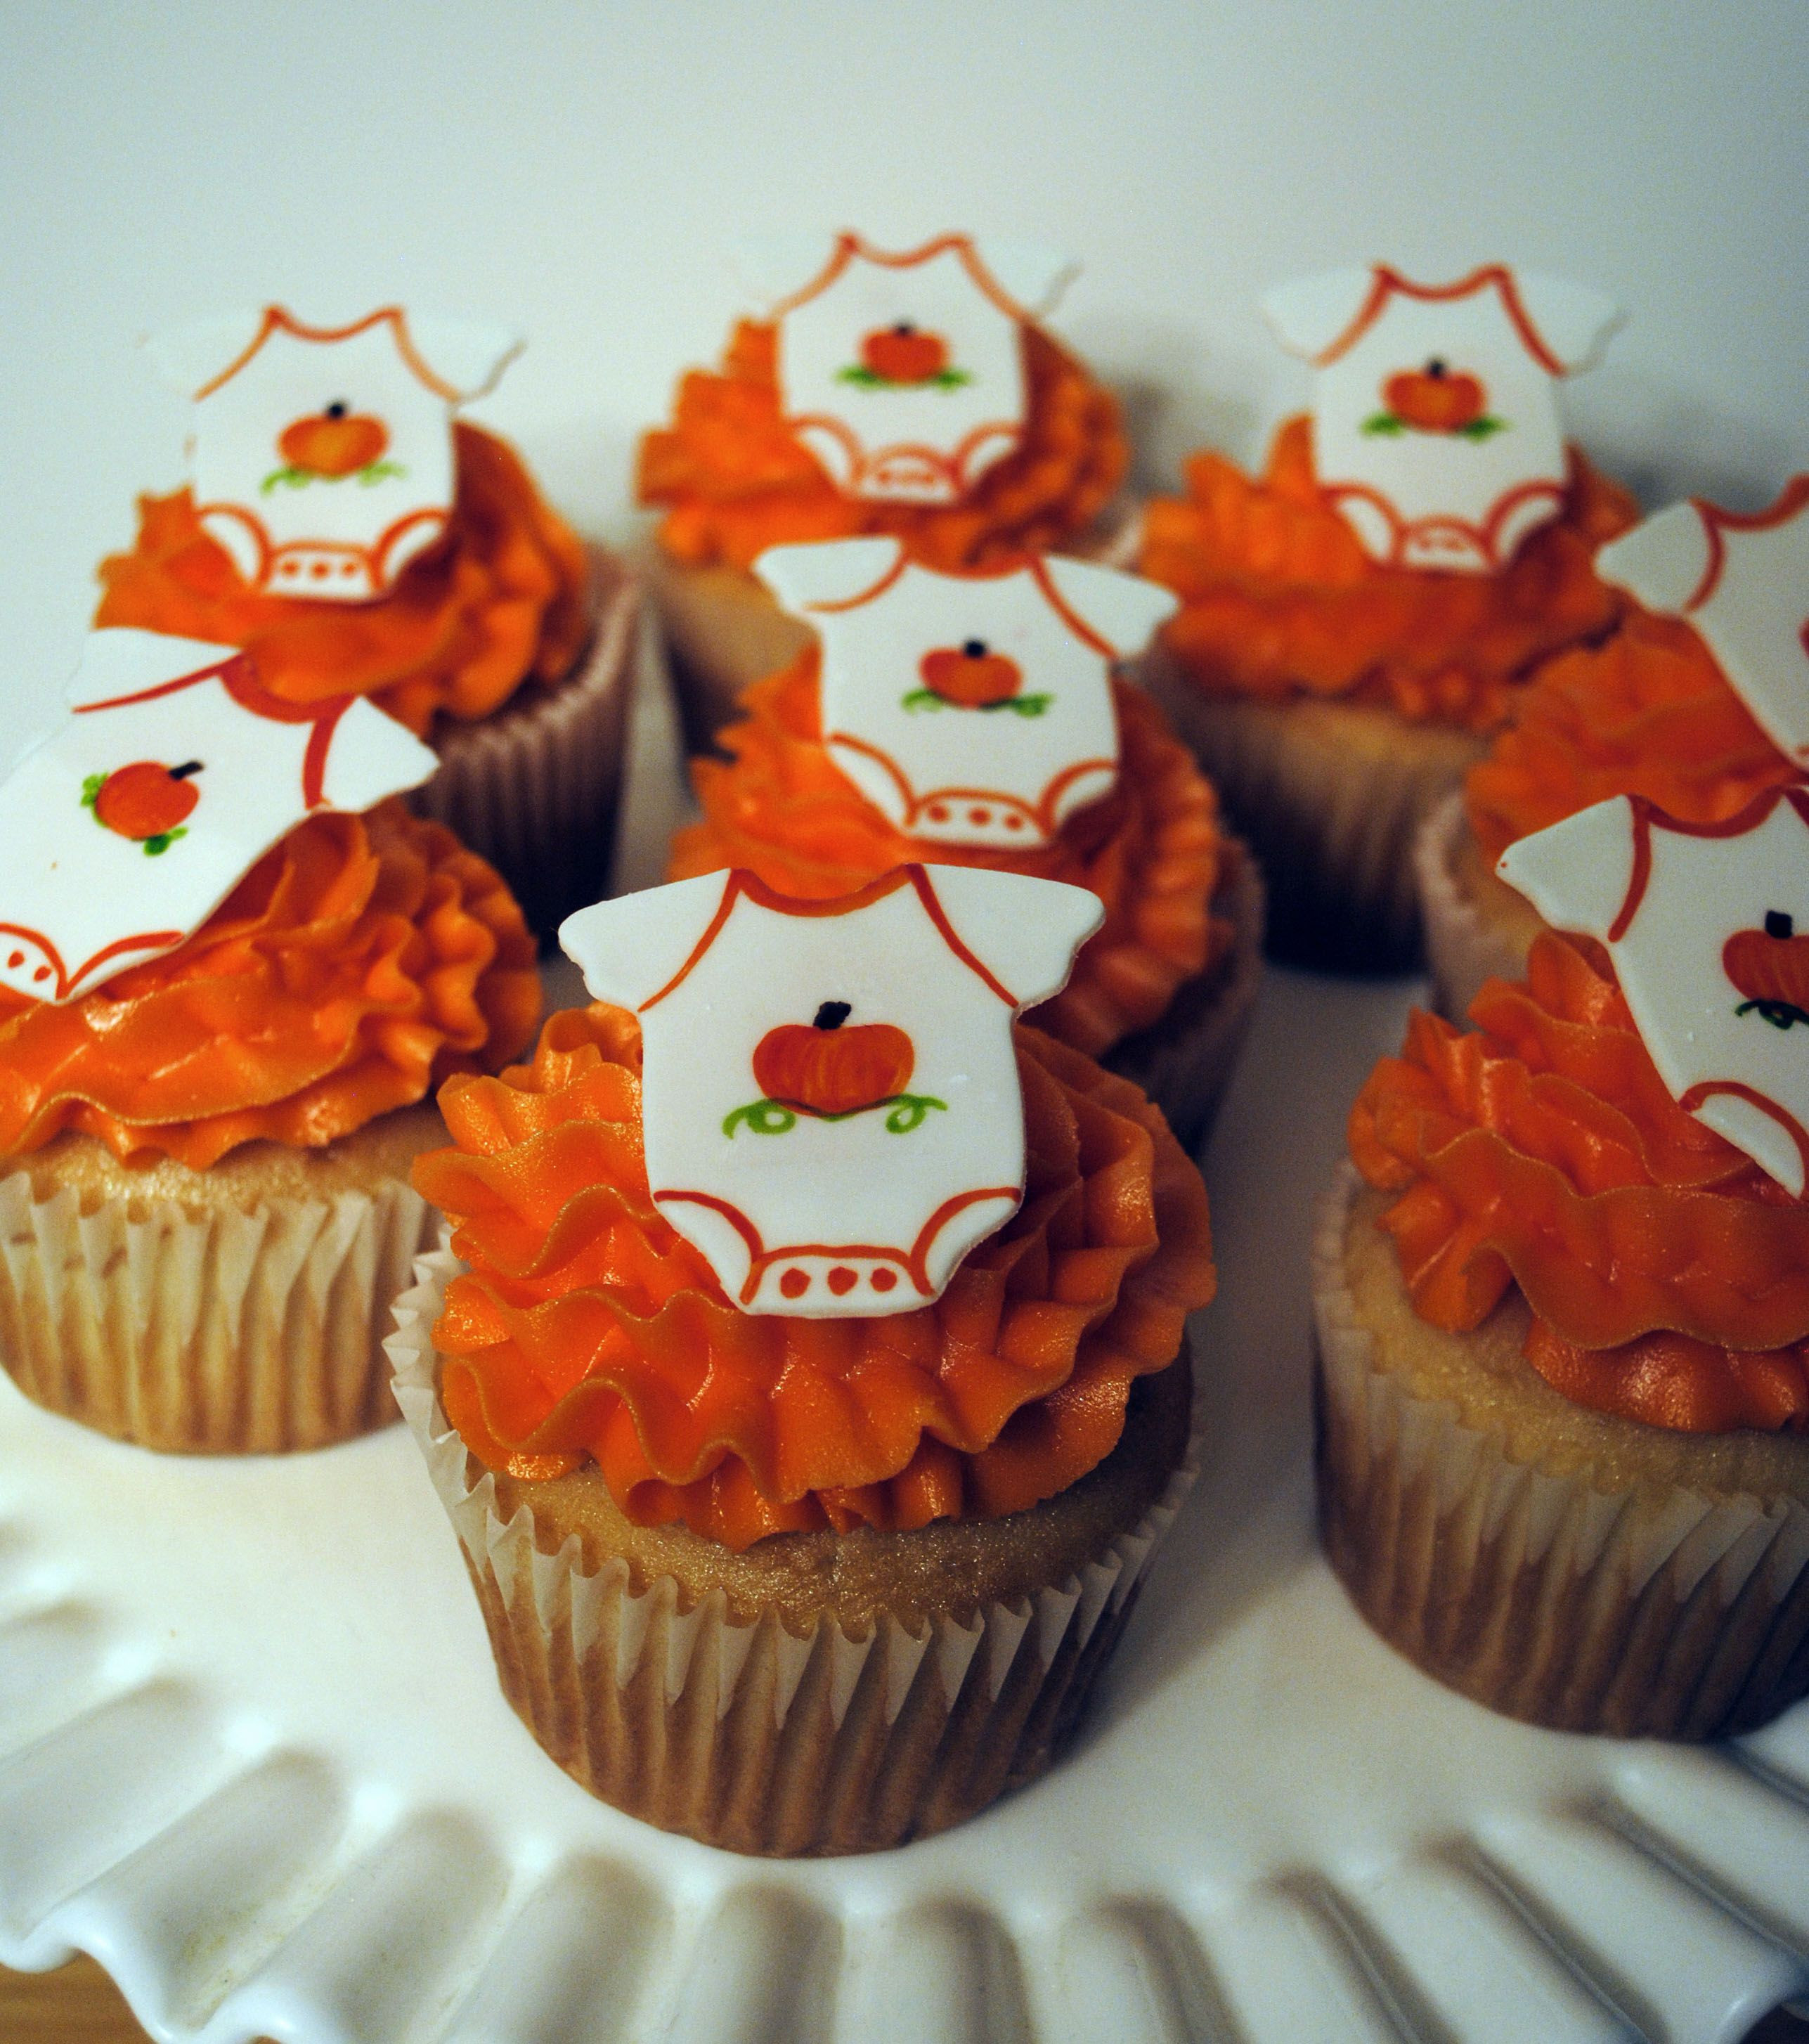 Fall Themed Cupcakes  Fall Baby Shower Cupcakes White frosting piped on with